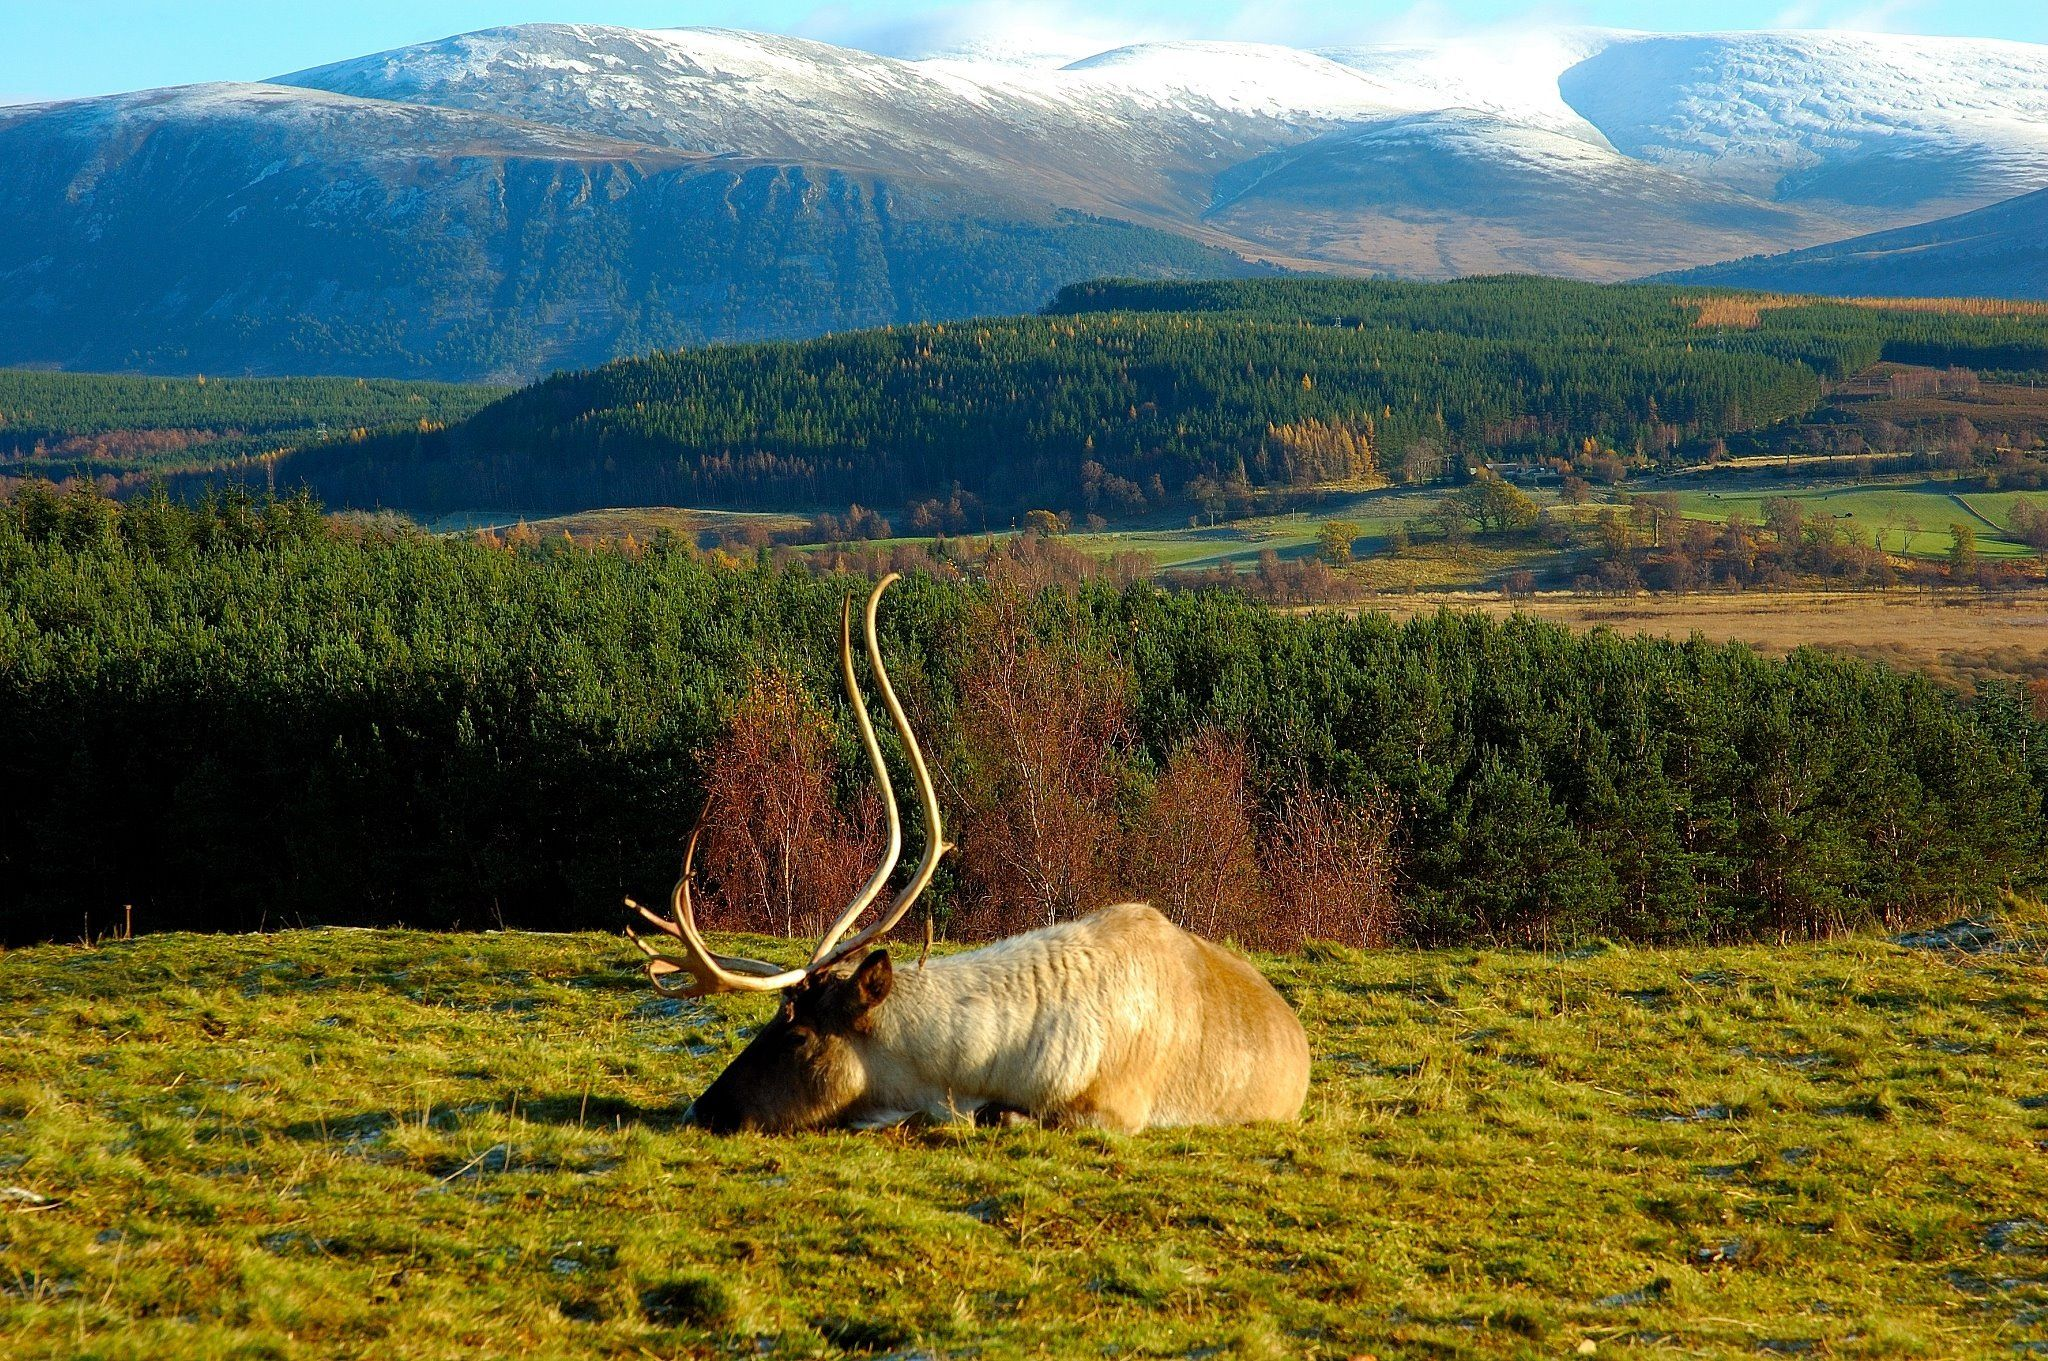 Scottish deer in the Highlands.